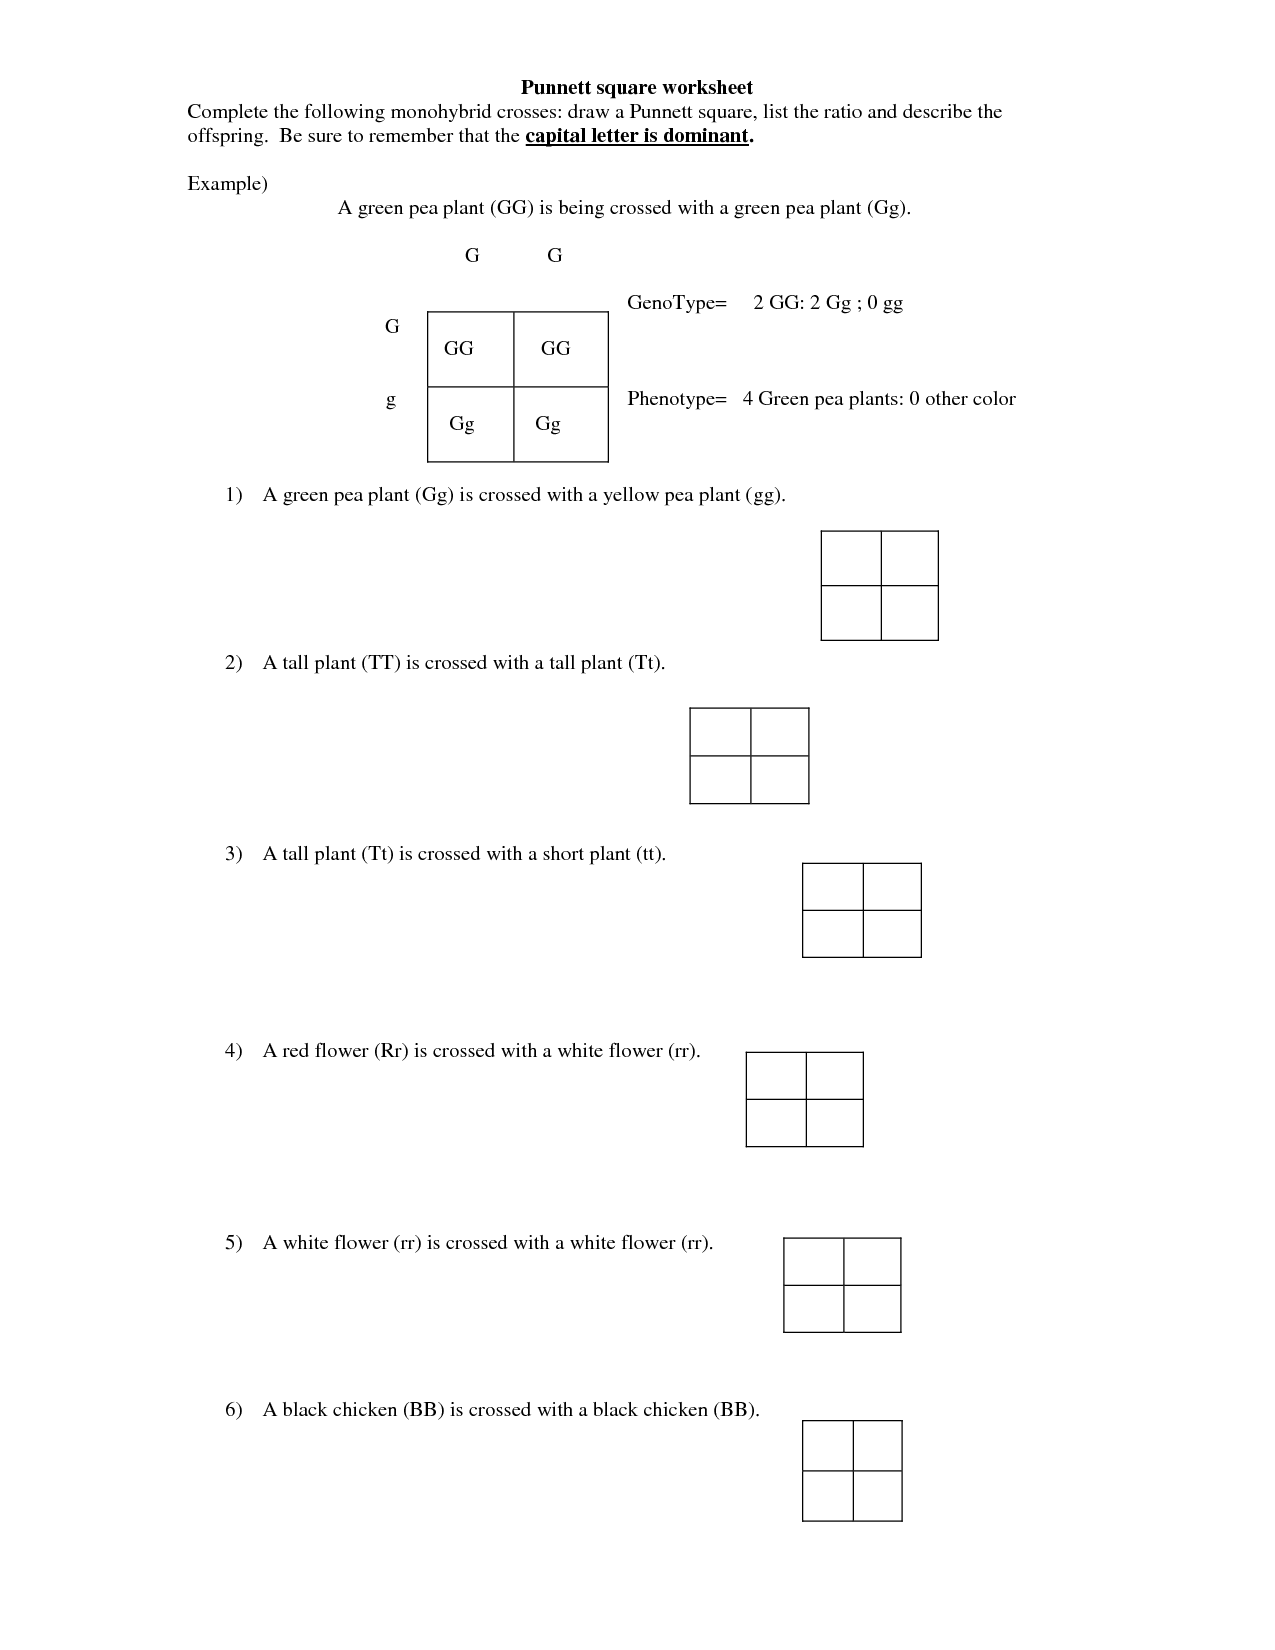 Worksheets Dihybrid Crosses Worksheet Answers worksheet monohybrid cross key luizah and homework answers irade co zsollenquiget s soupmonohybrid key